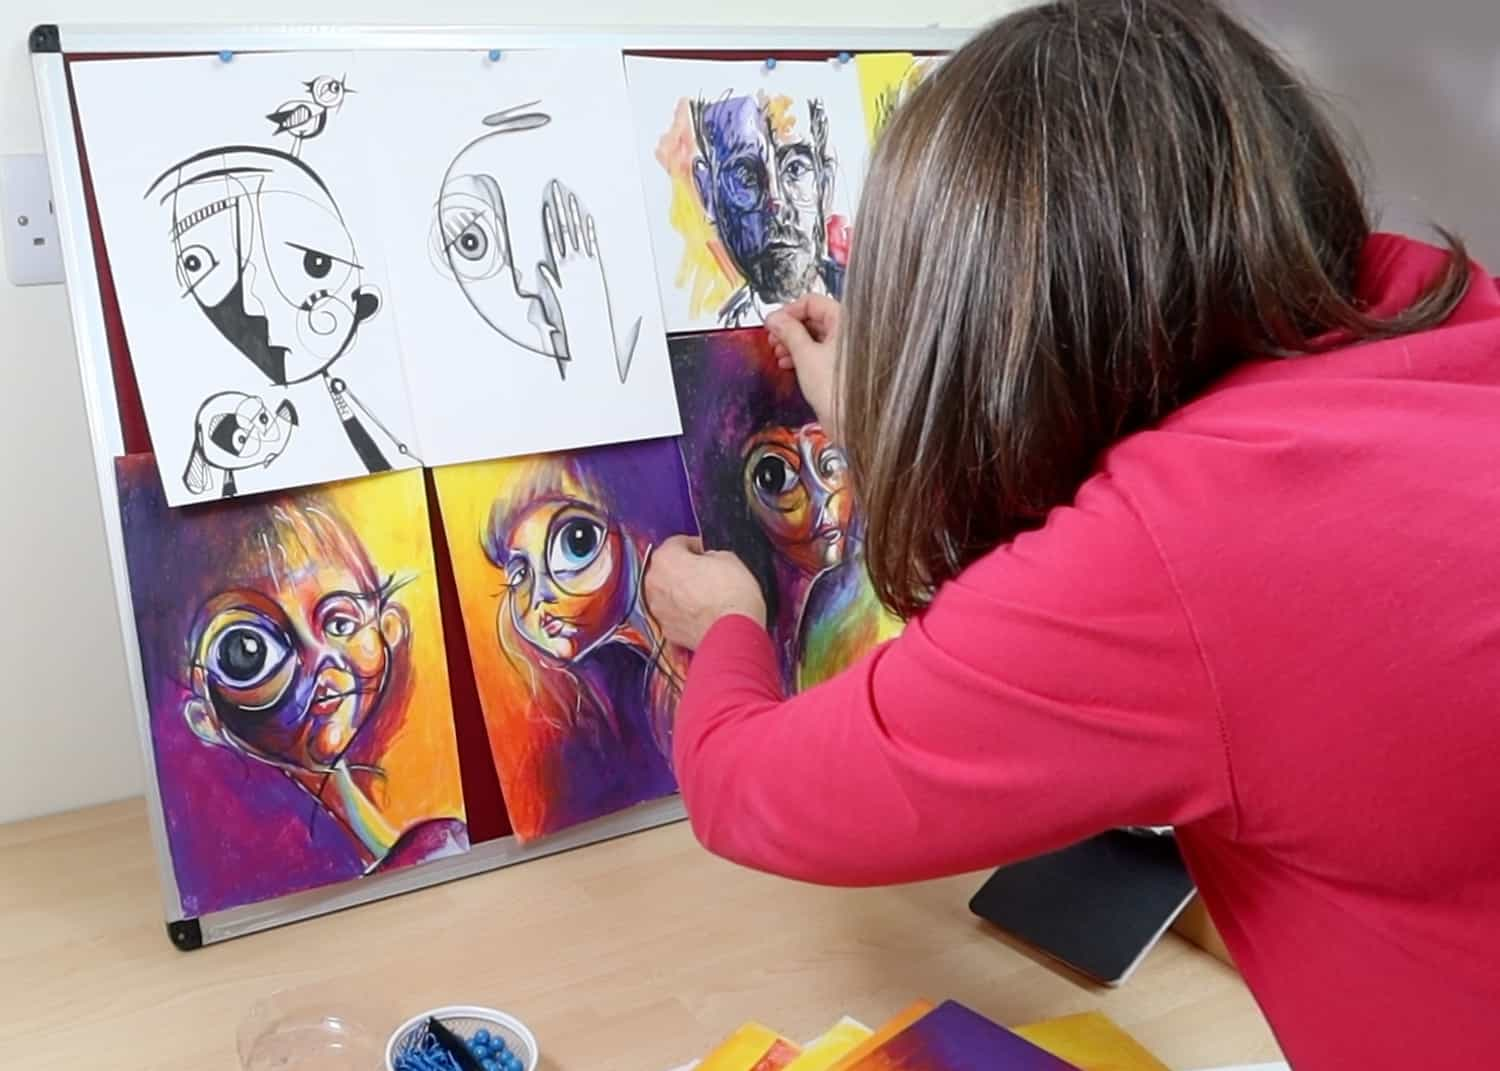 Look at your own art to find your style